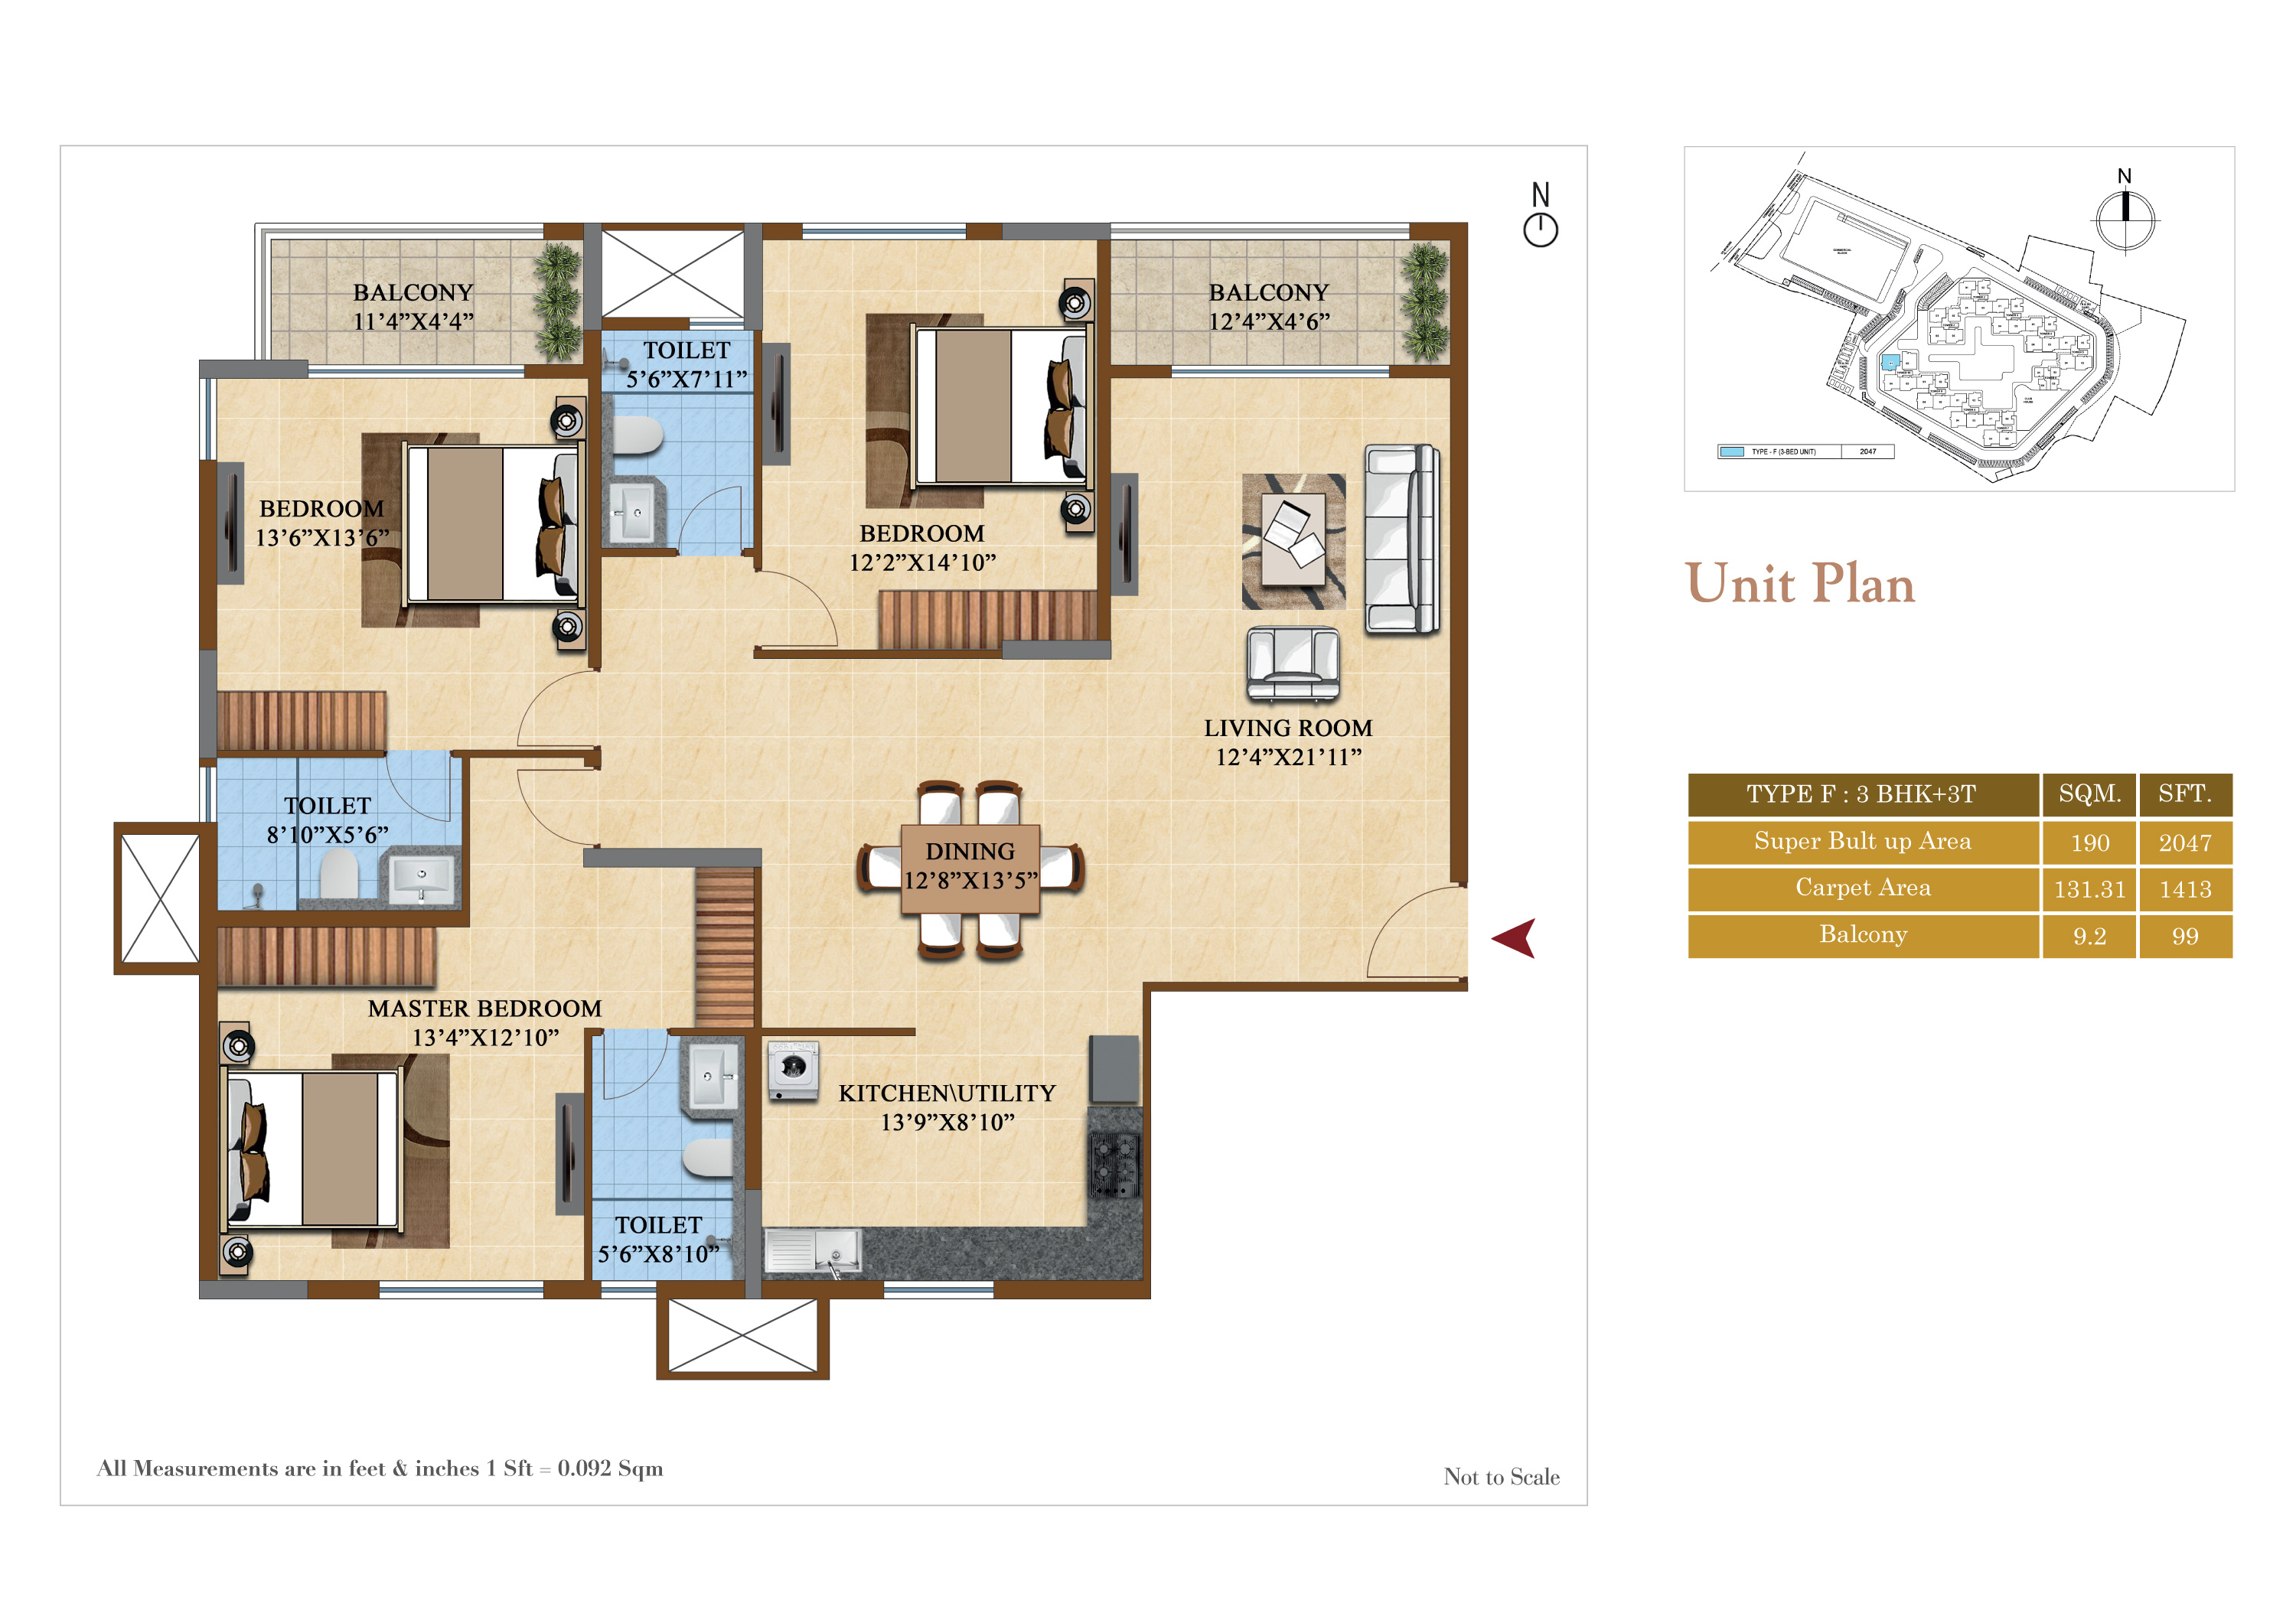 salarpuria sattva divinity apartment 3bhk 1413sqft141